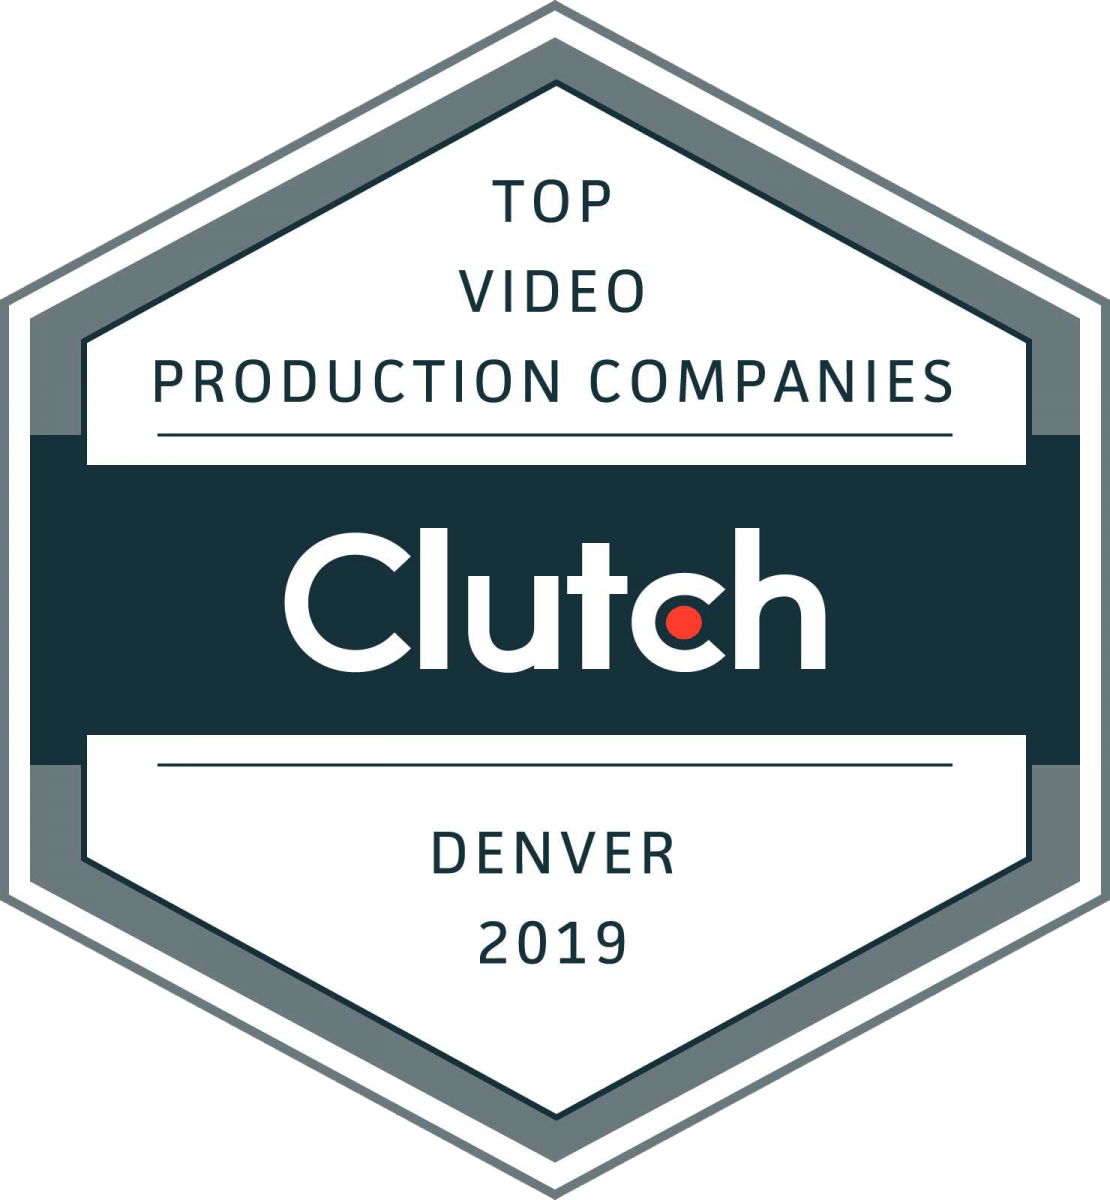 Best-Production-Companies-Denver-2019.png